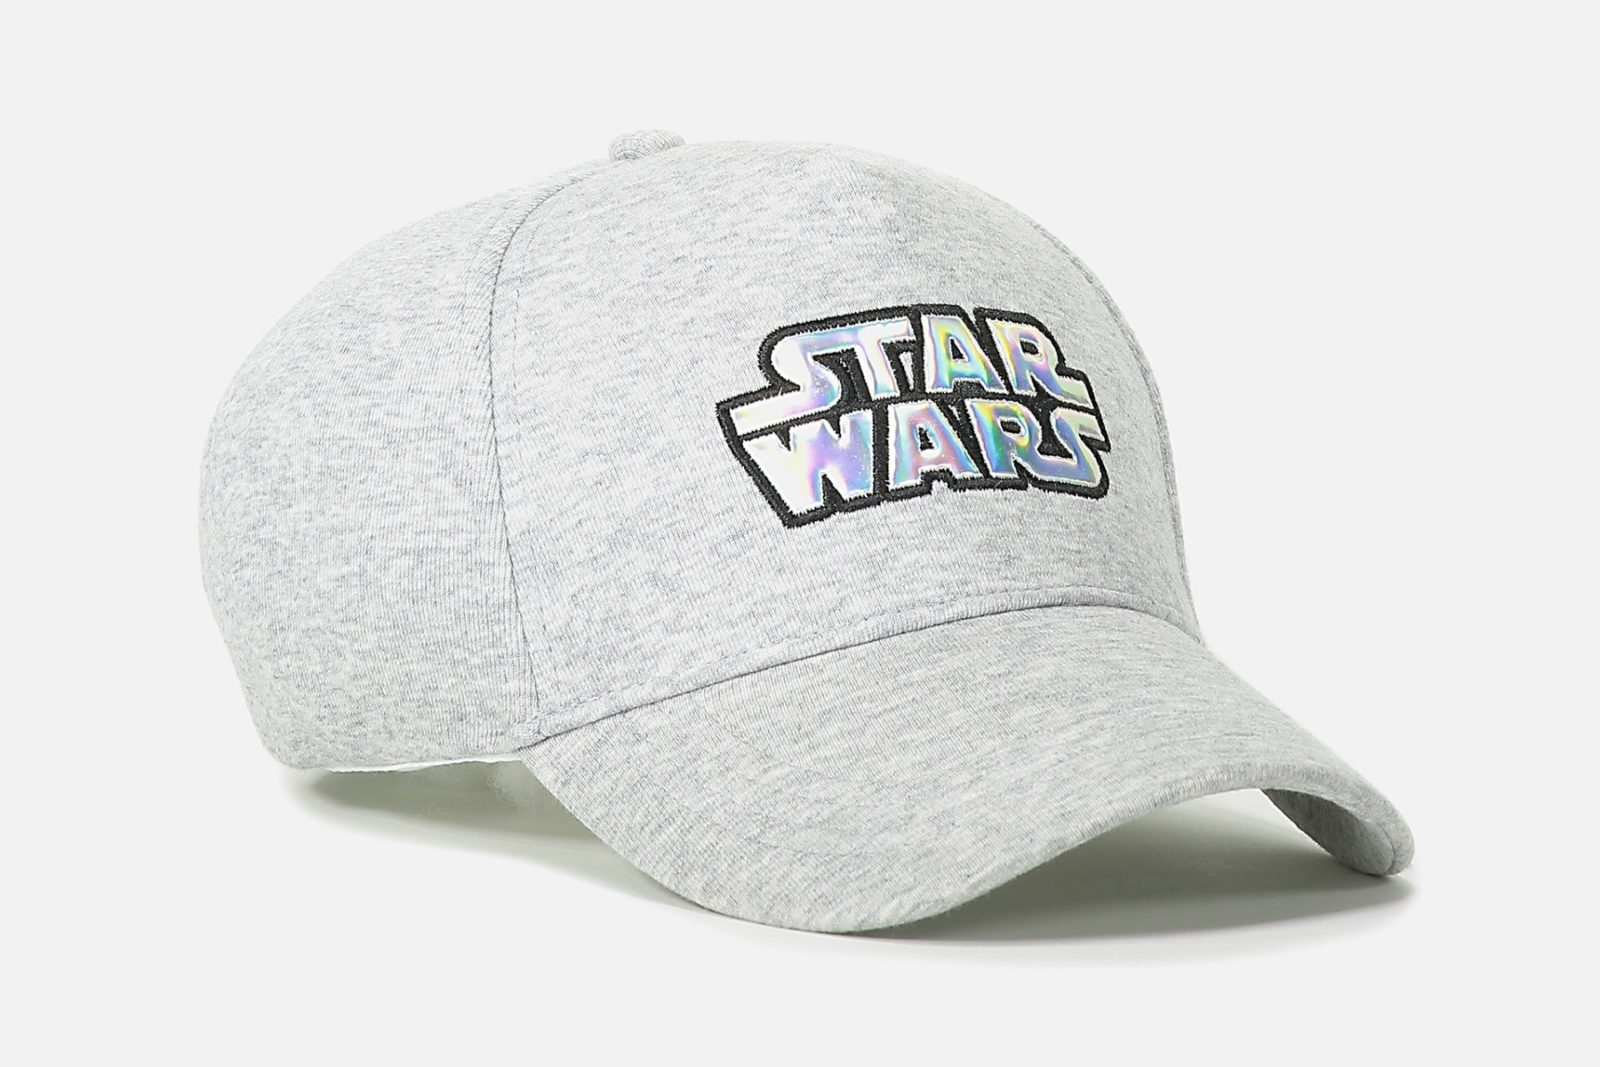 Star Wars Logo Cap at Cotton On